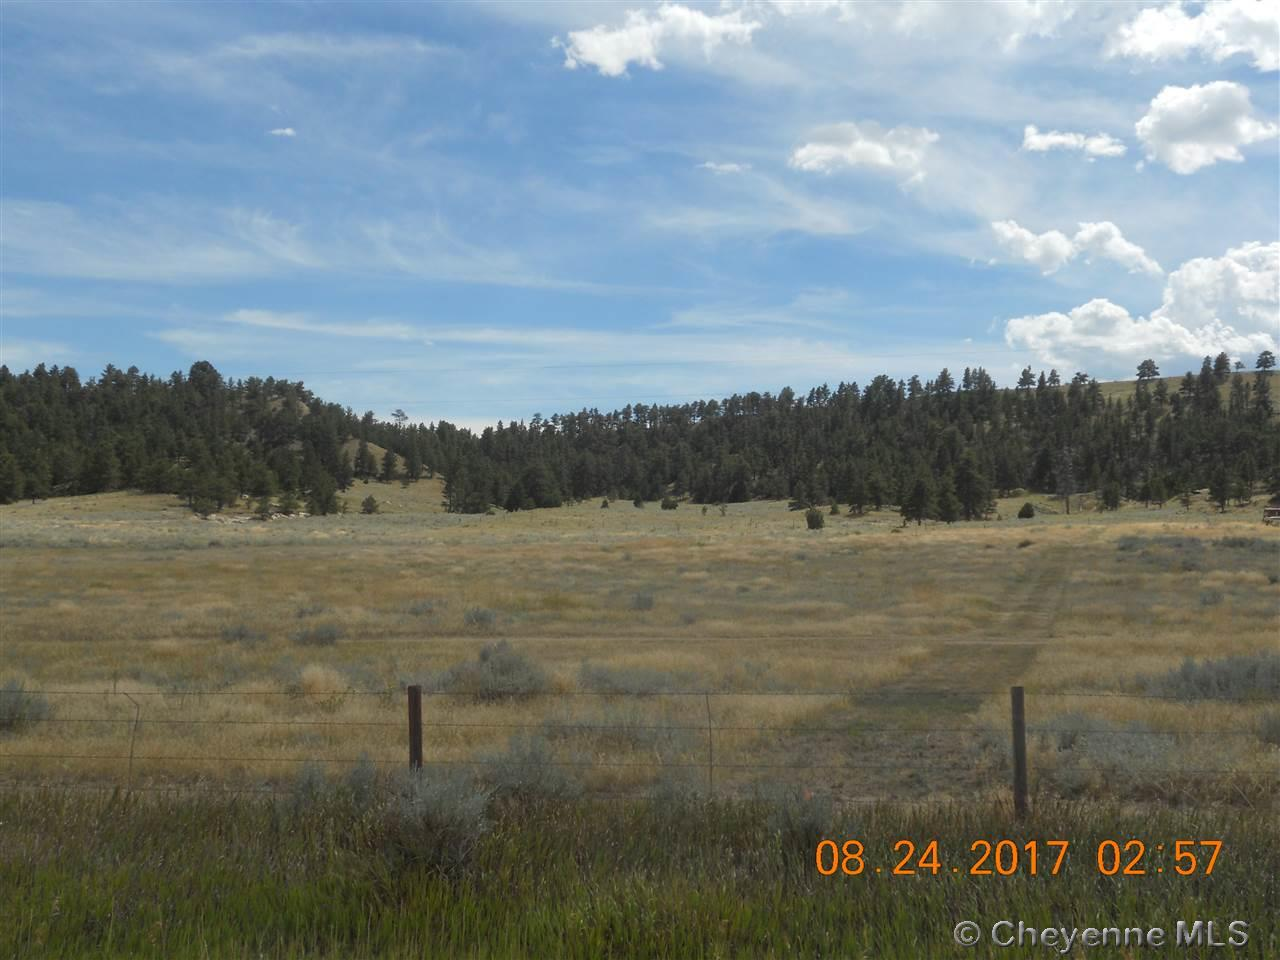 Land for Sale at Lot 1 Wagon Wheel Rd Lot 1 Wagon Wheel Rd Glendo, Wyoming 82213 United States